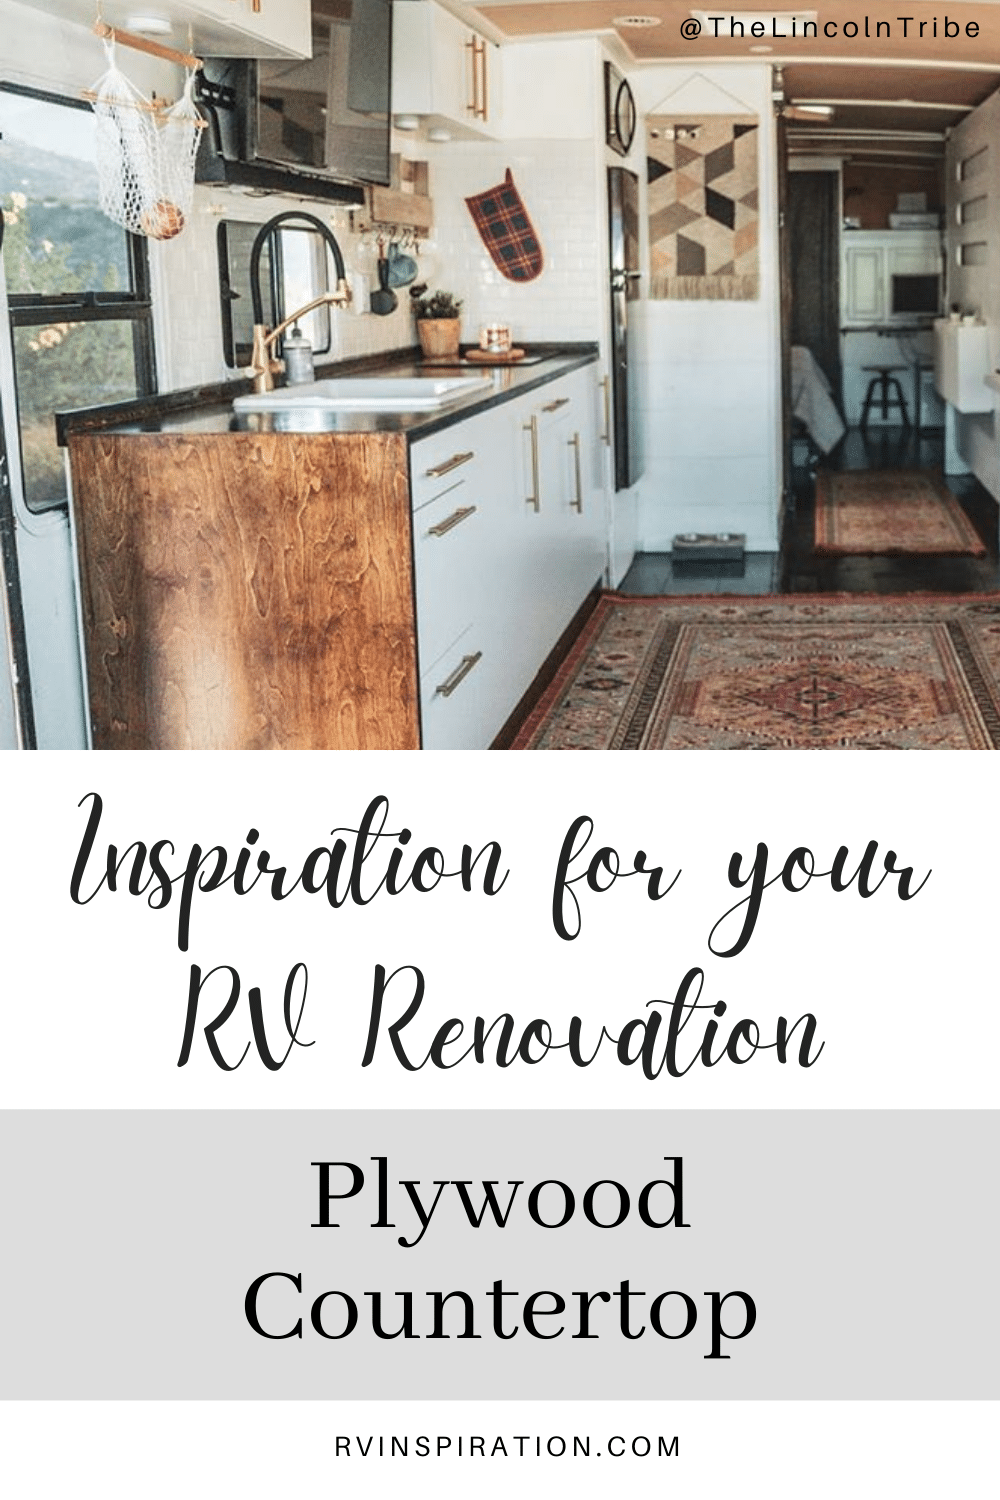 Update your RV kitchen with a beautiful and affordable plywood countertop. #RVrenovation #RVkitchen #RVmakeover #RVcountertop